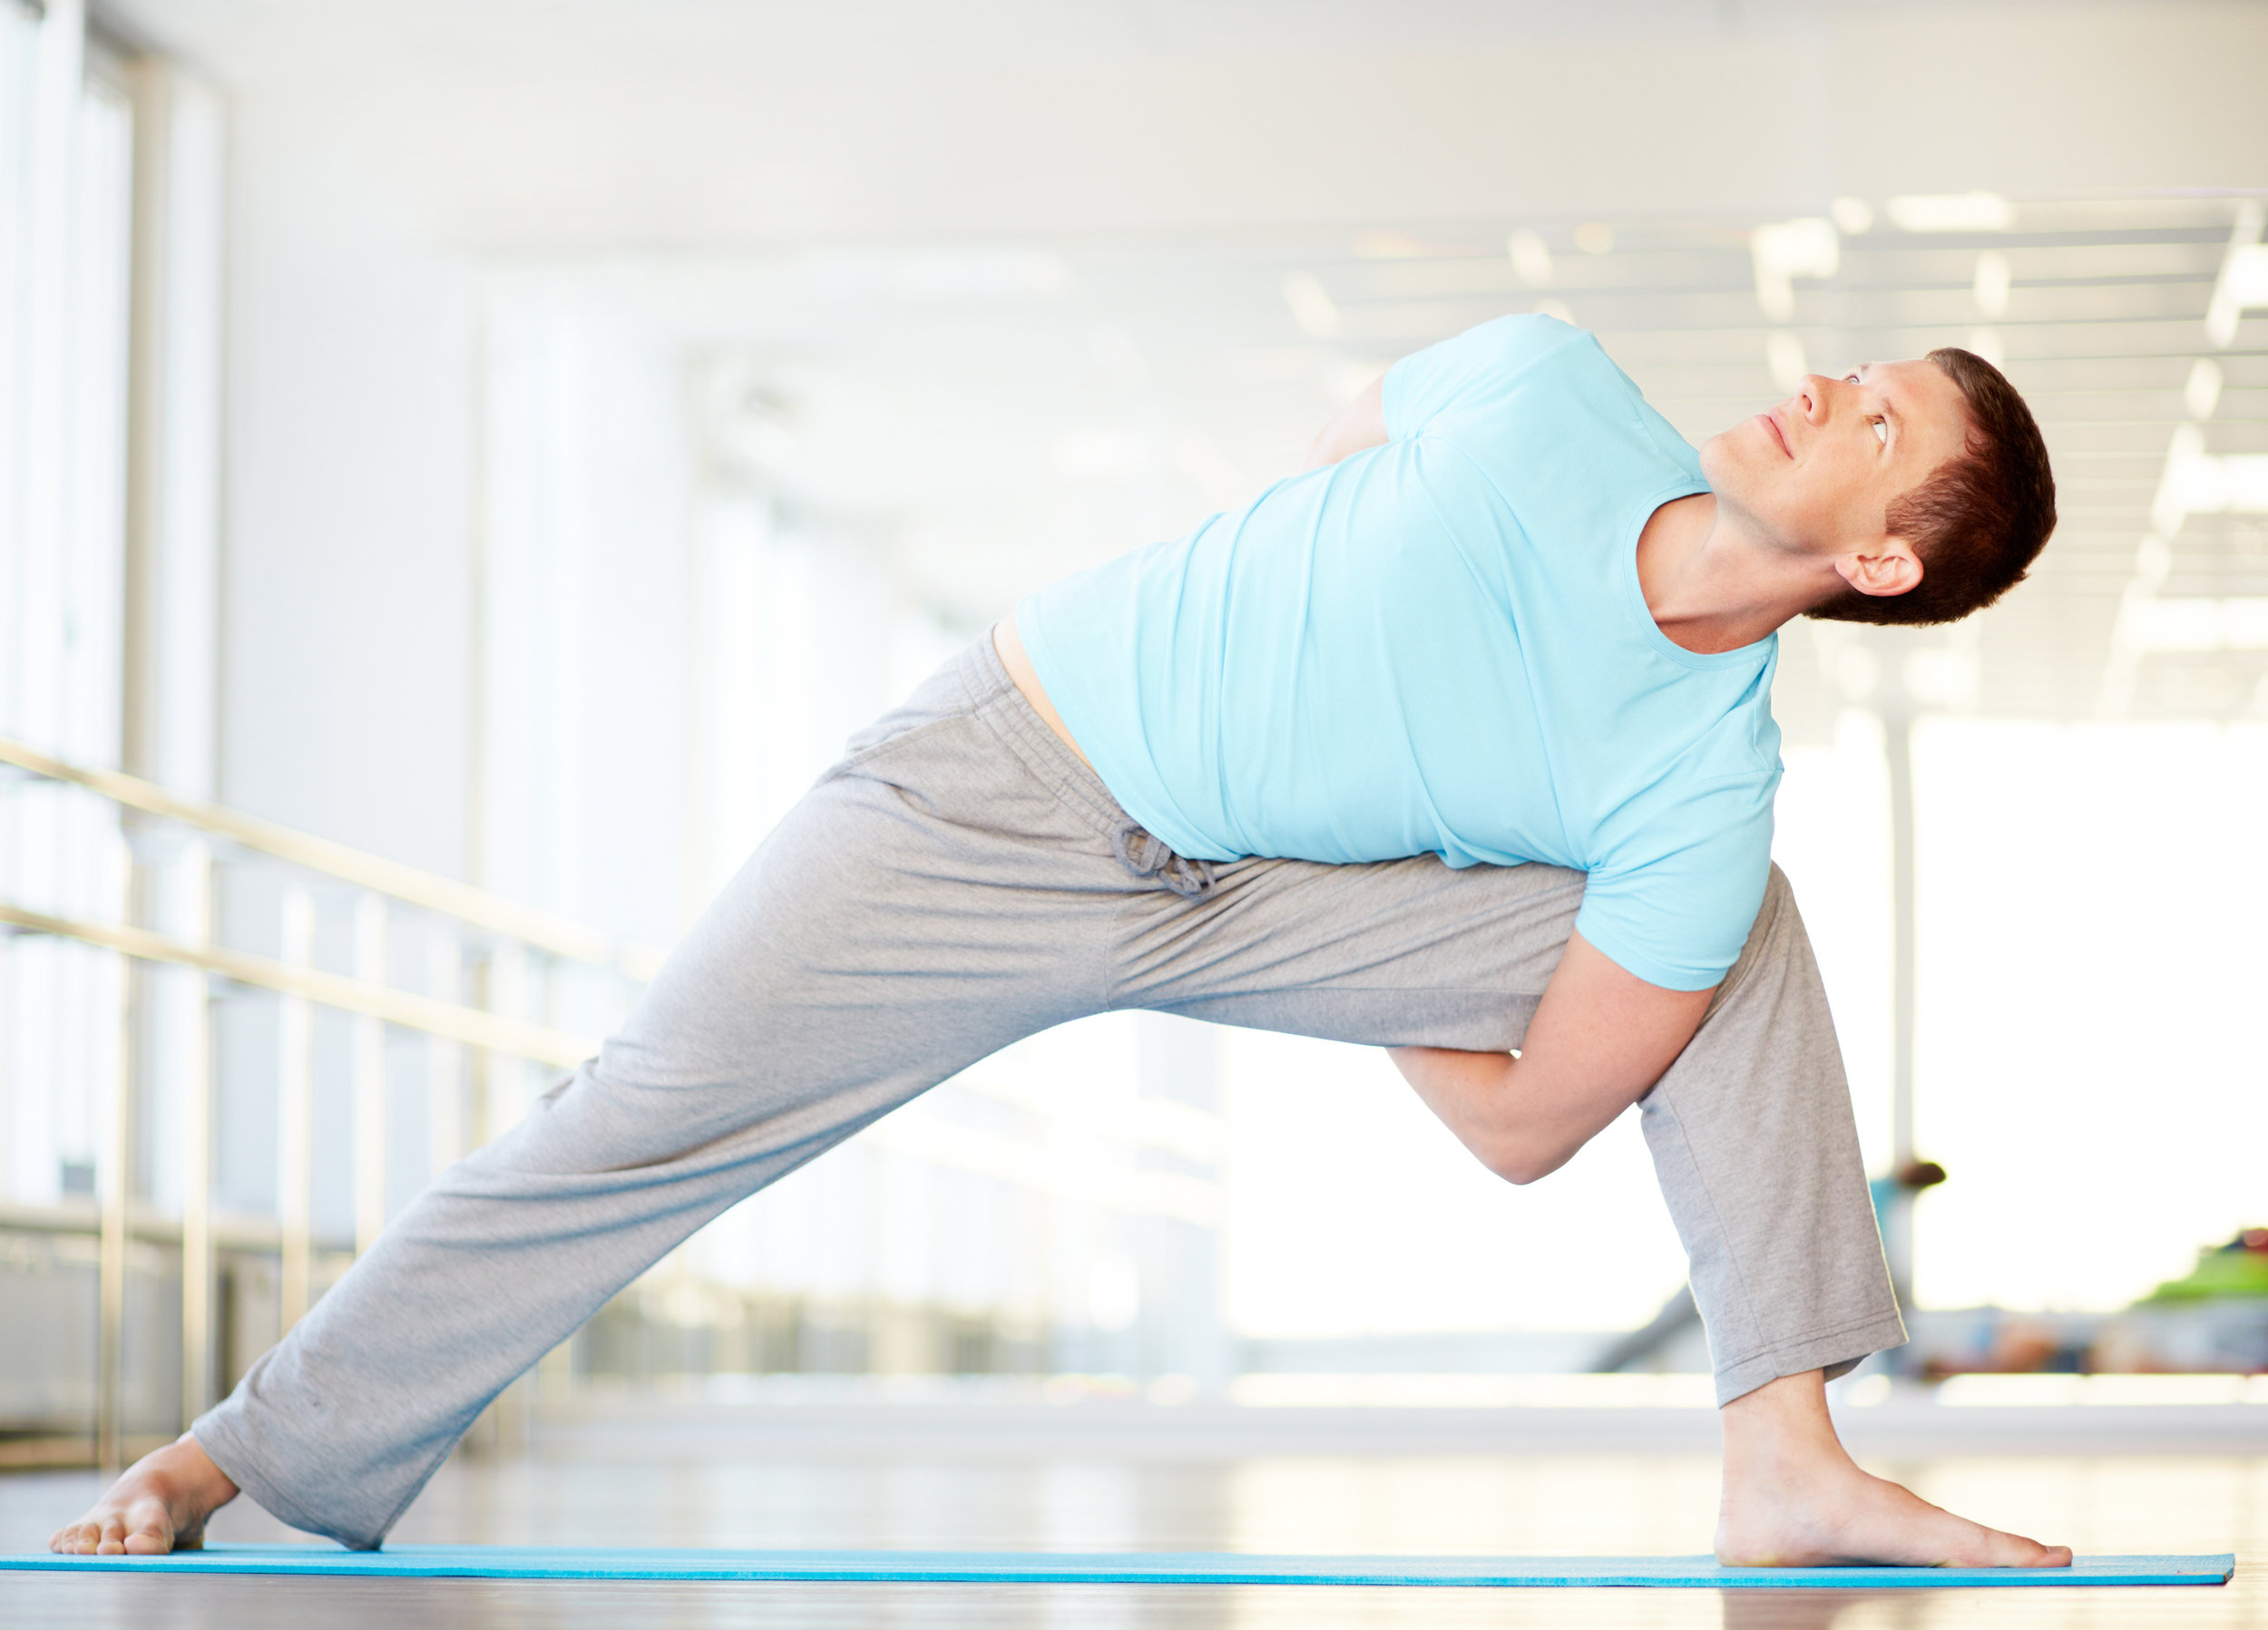 graphicstock-portrait-of-young-man-doing-stretching-exercise-in-gym_Bgas_l-x-.jpg